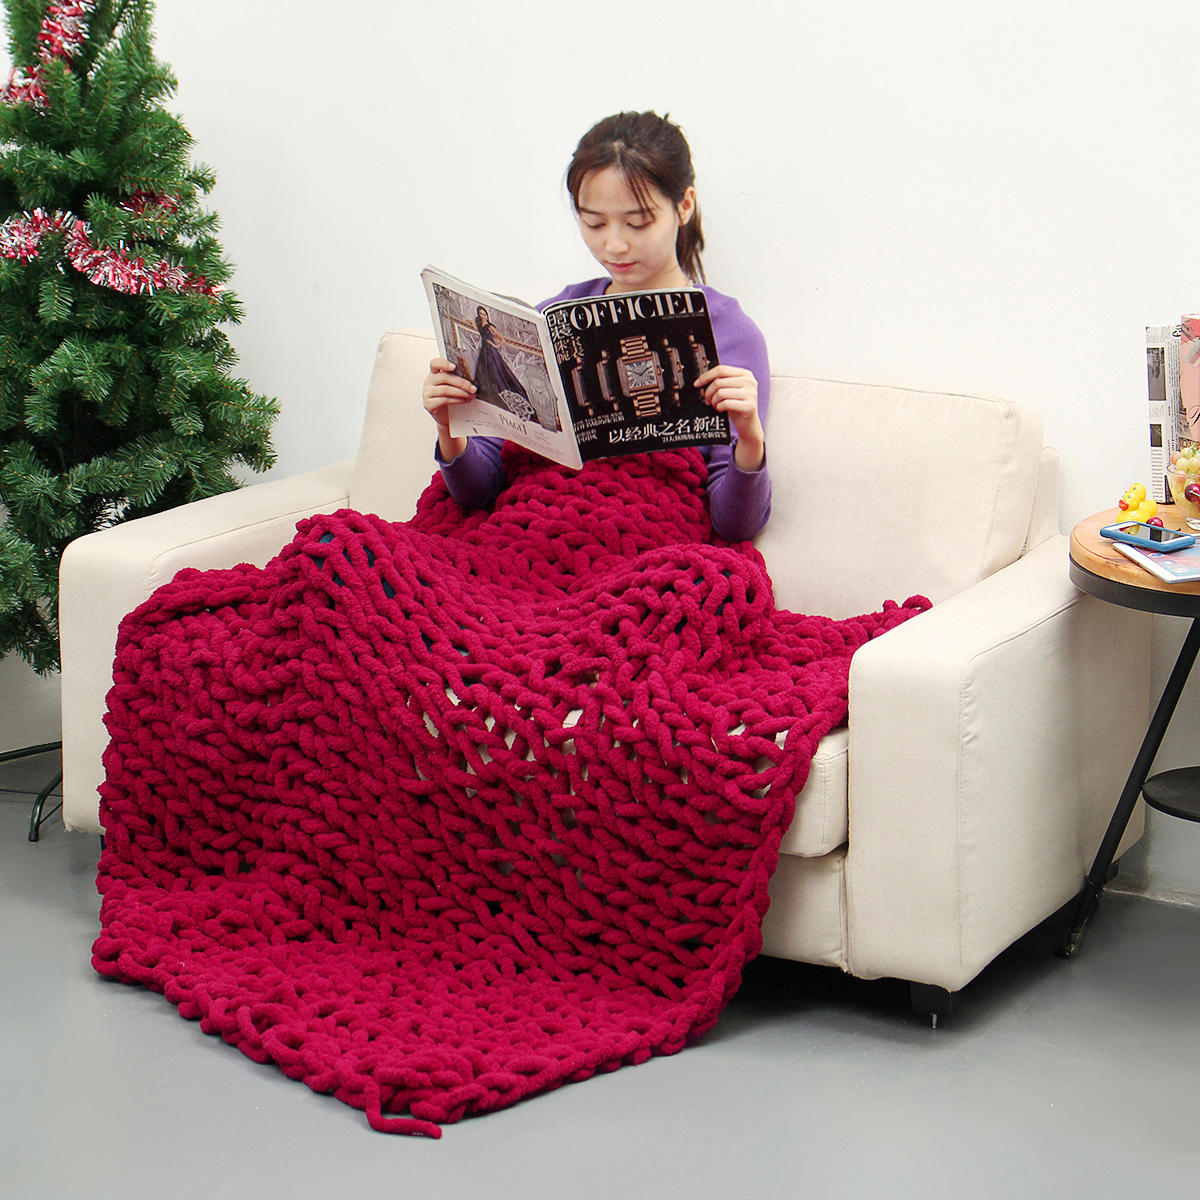 100x120cm Handmade Knitted Blanket Cotton Soft Washable Lint free Throw Blankets - 1